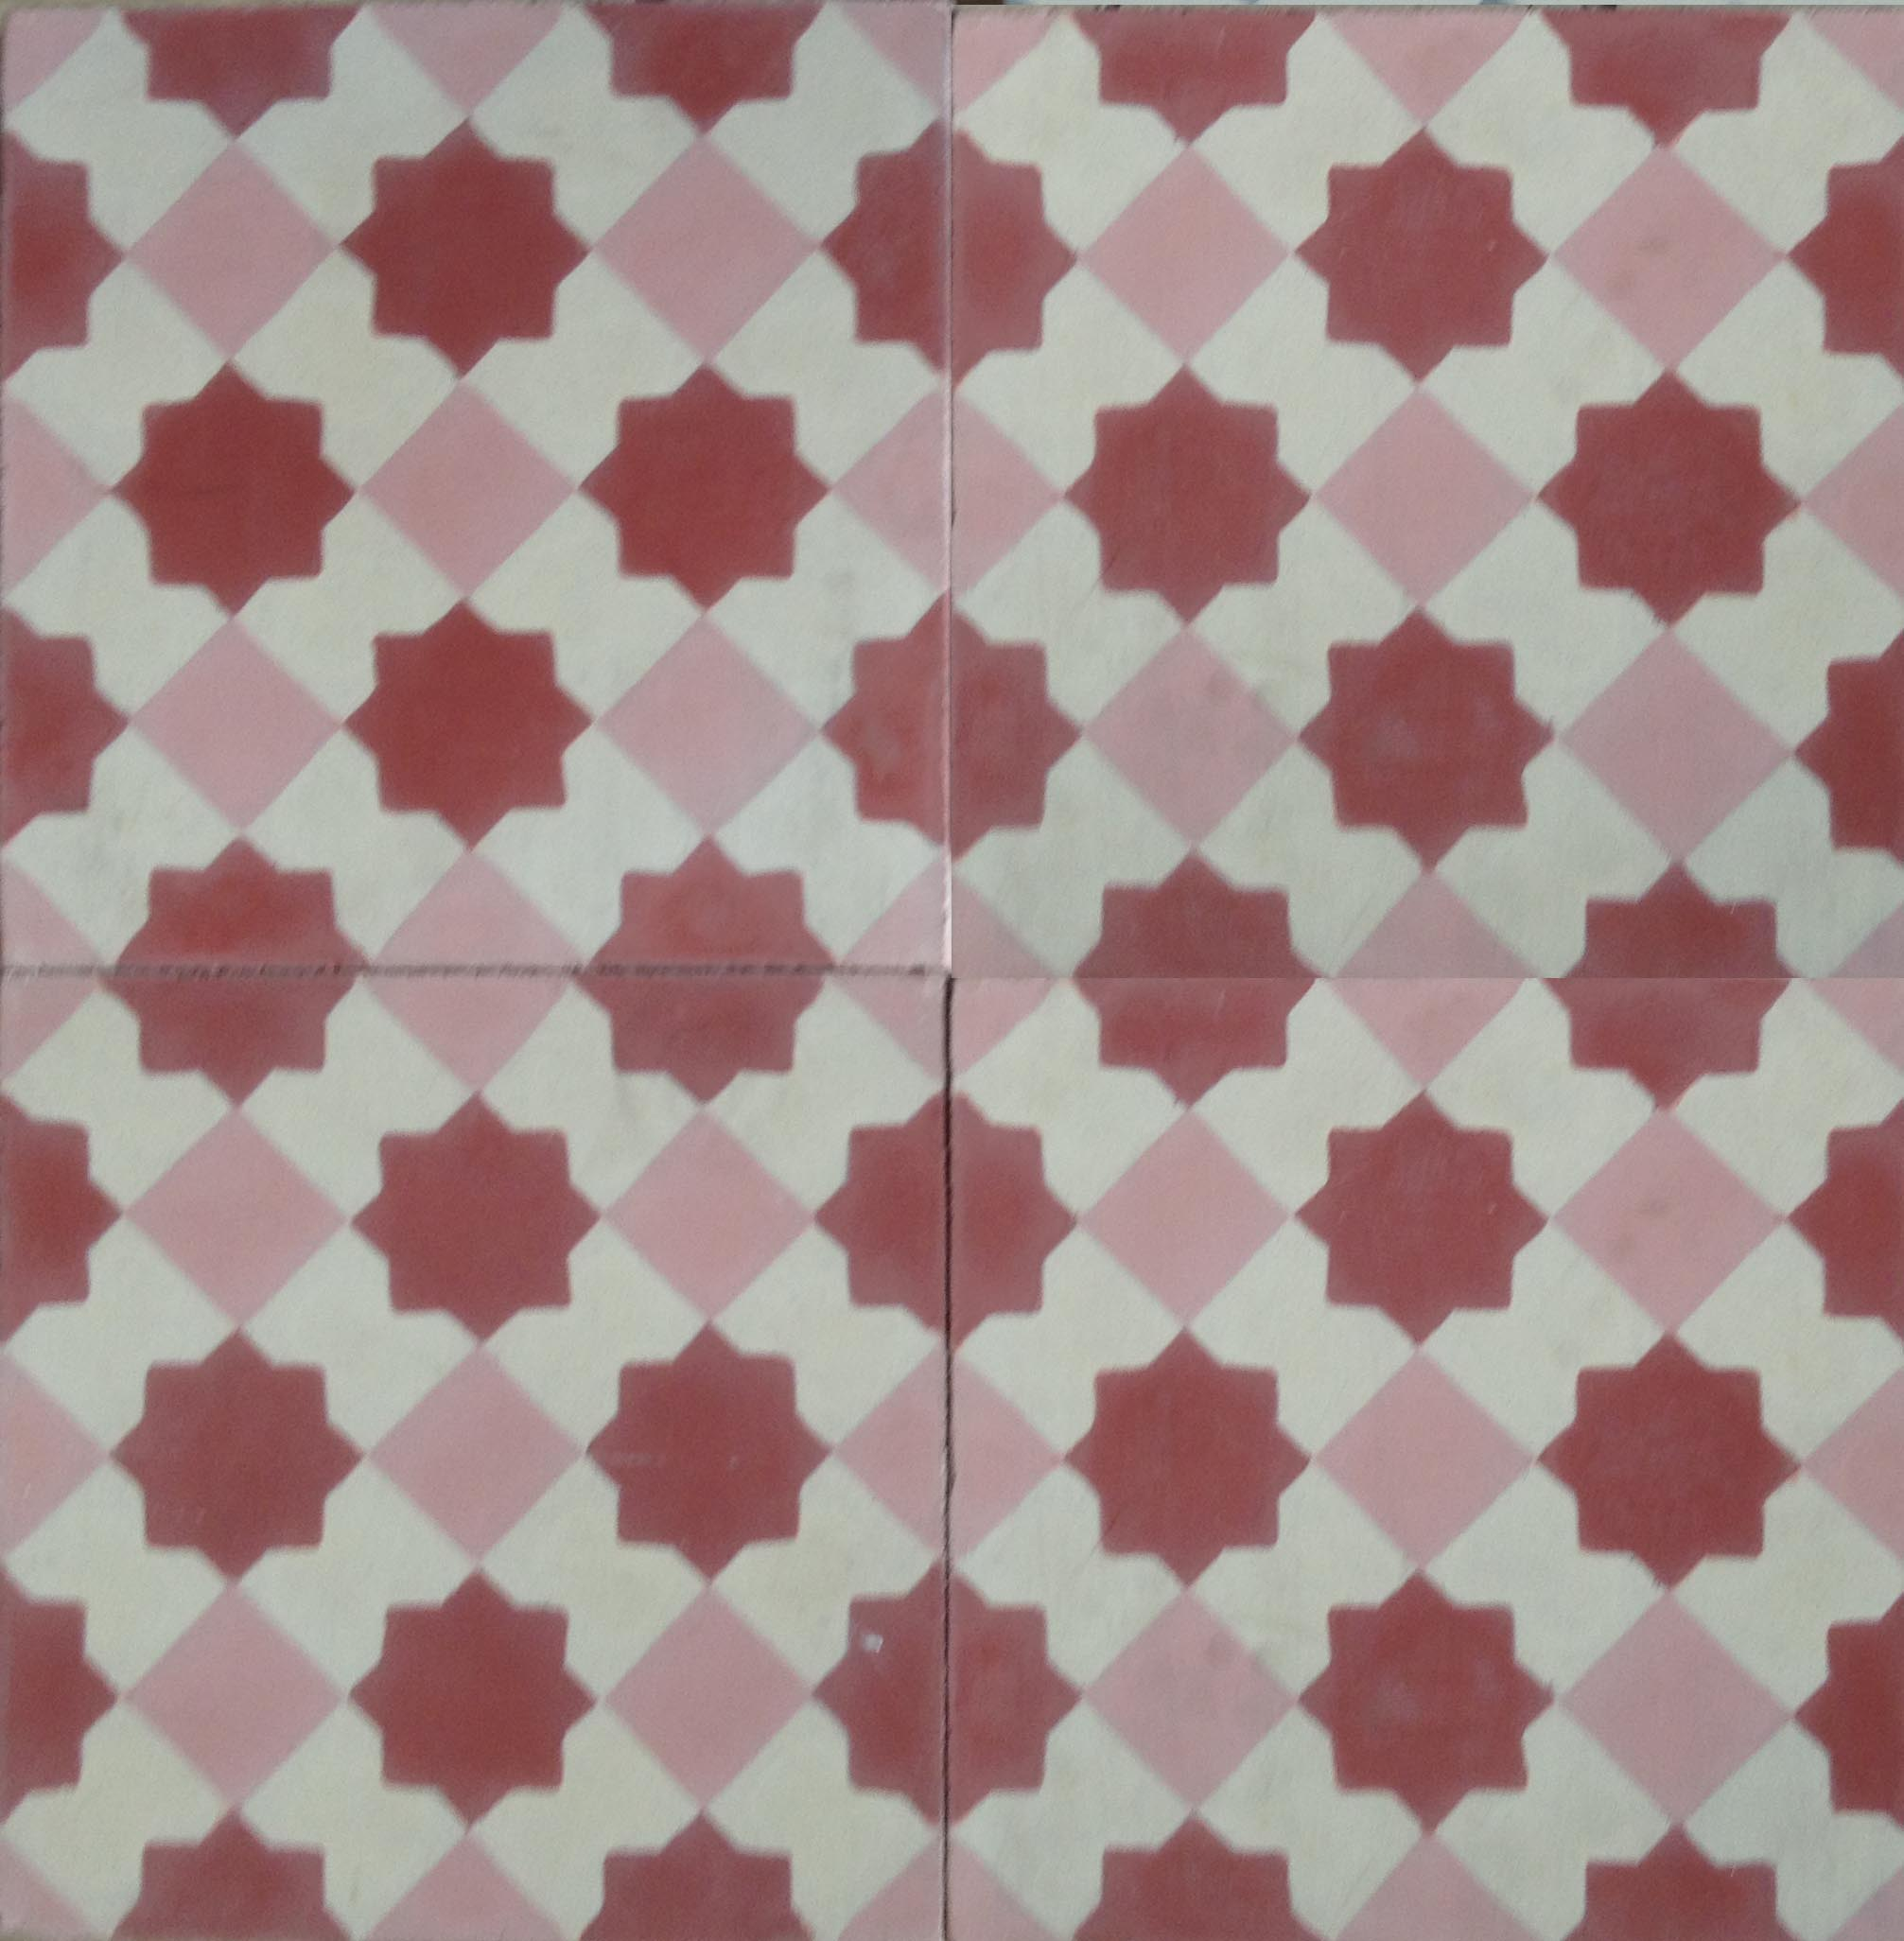 Moroccan tiles handmade moroccan encaustic cement tiles artwork for your floors dailygadgetfo Image collections